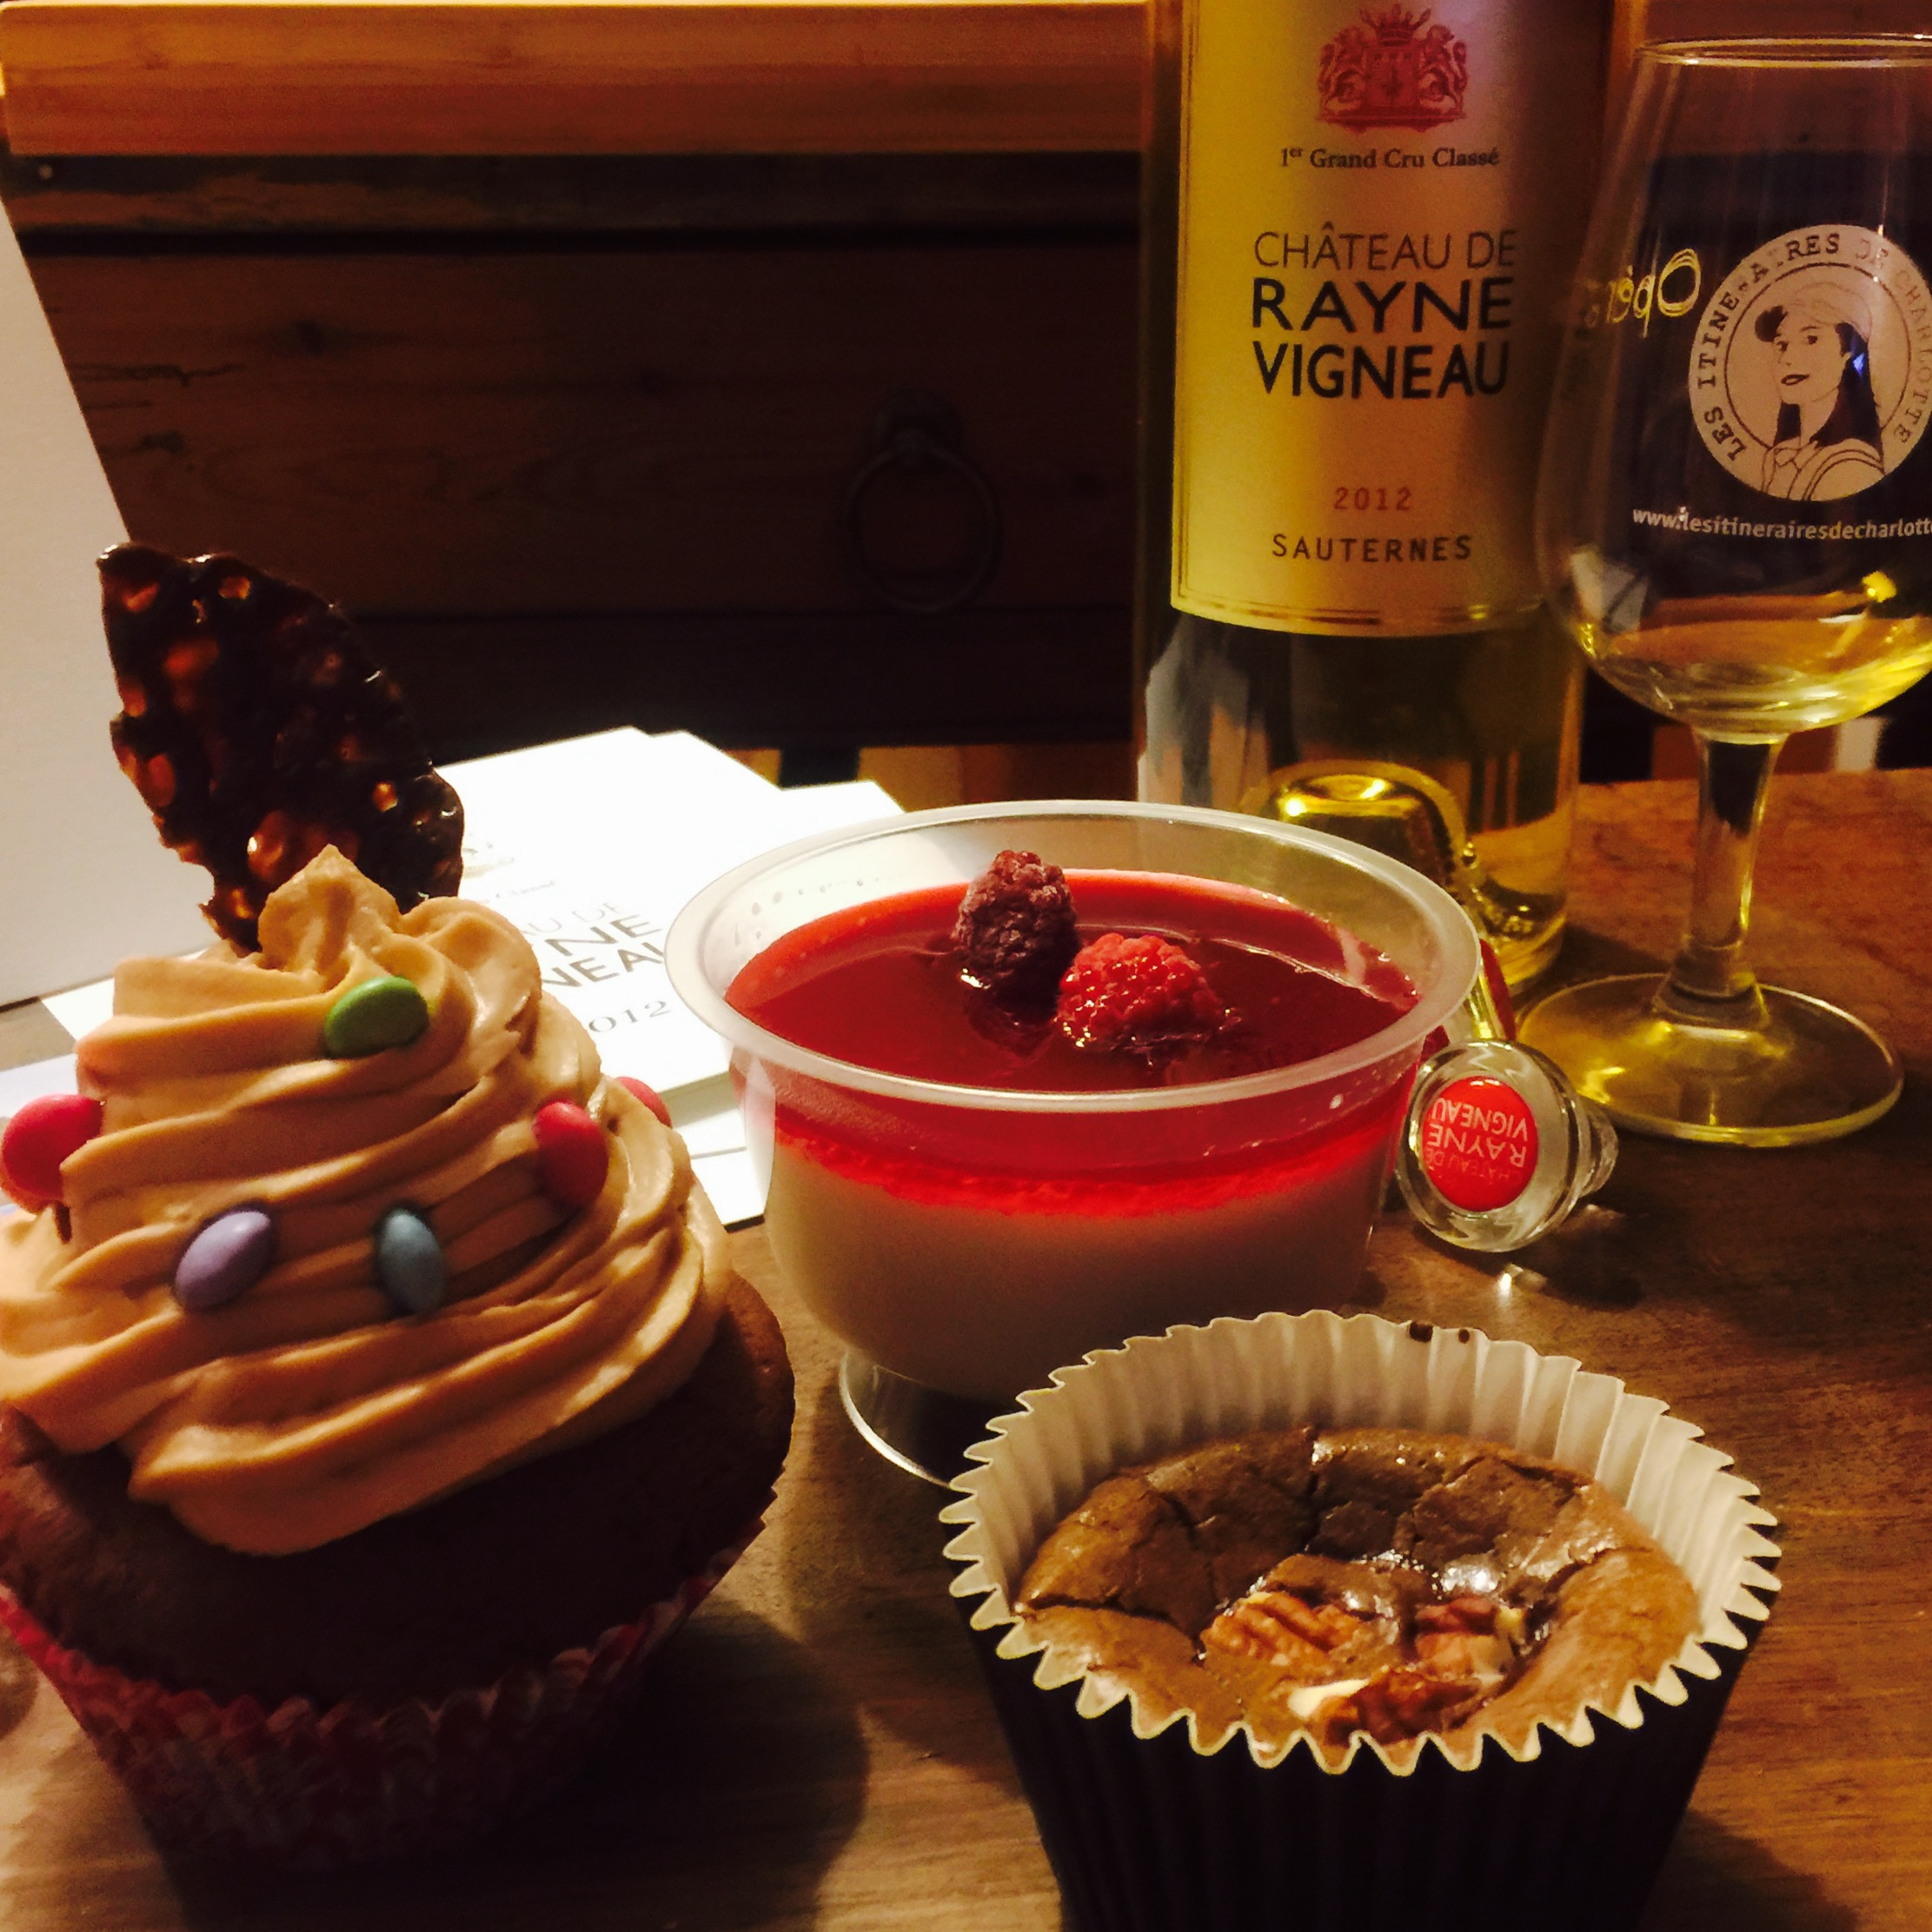 Baking classes at home with Alexander and the Château de Rayne-Vigneau!